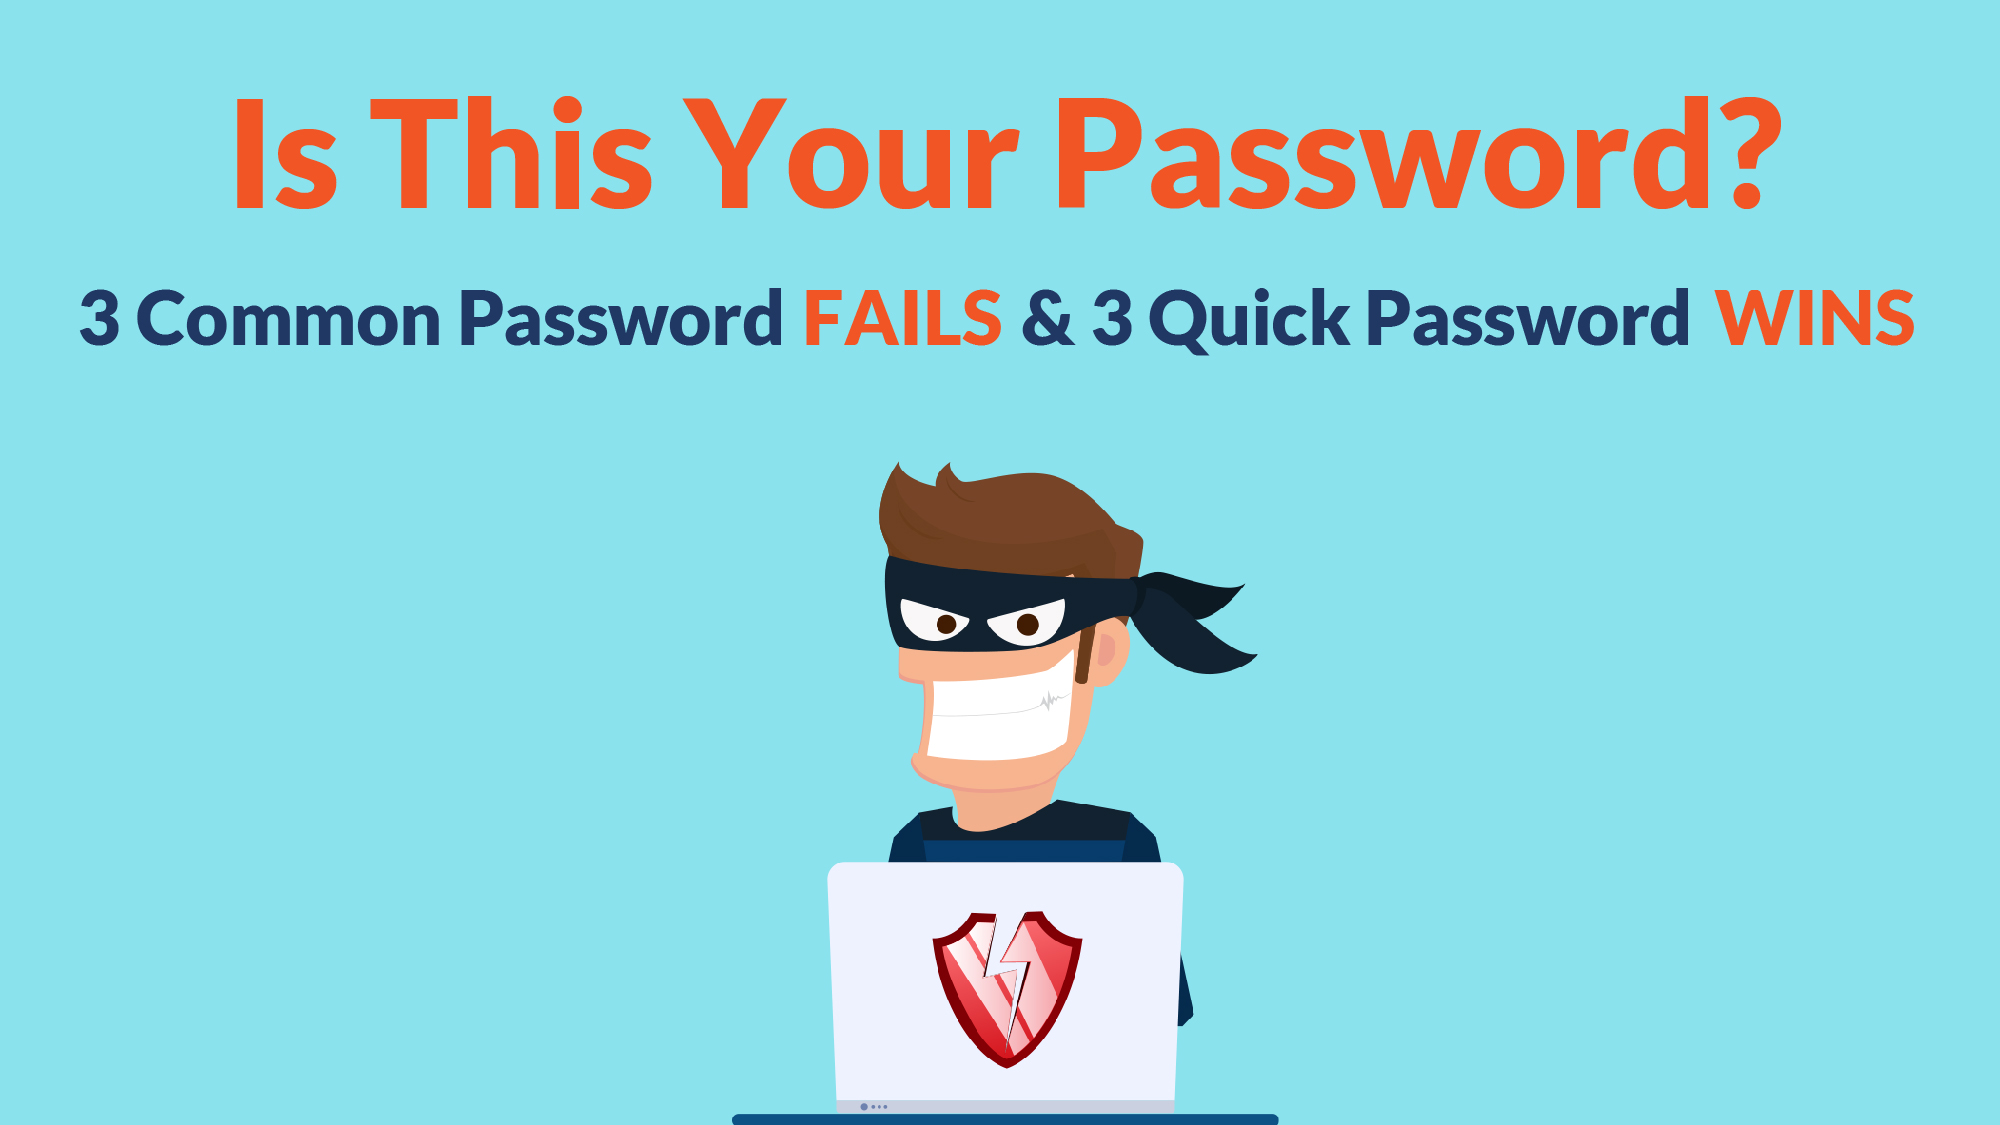 Is This Your Password?